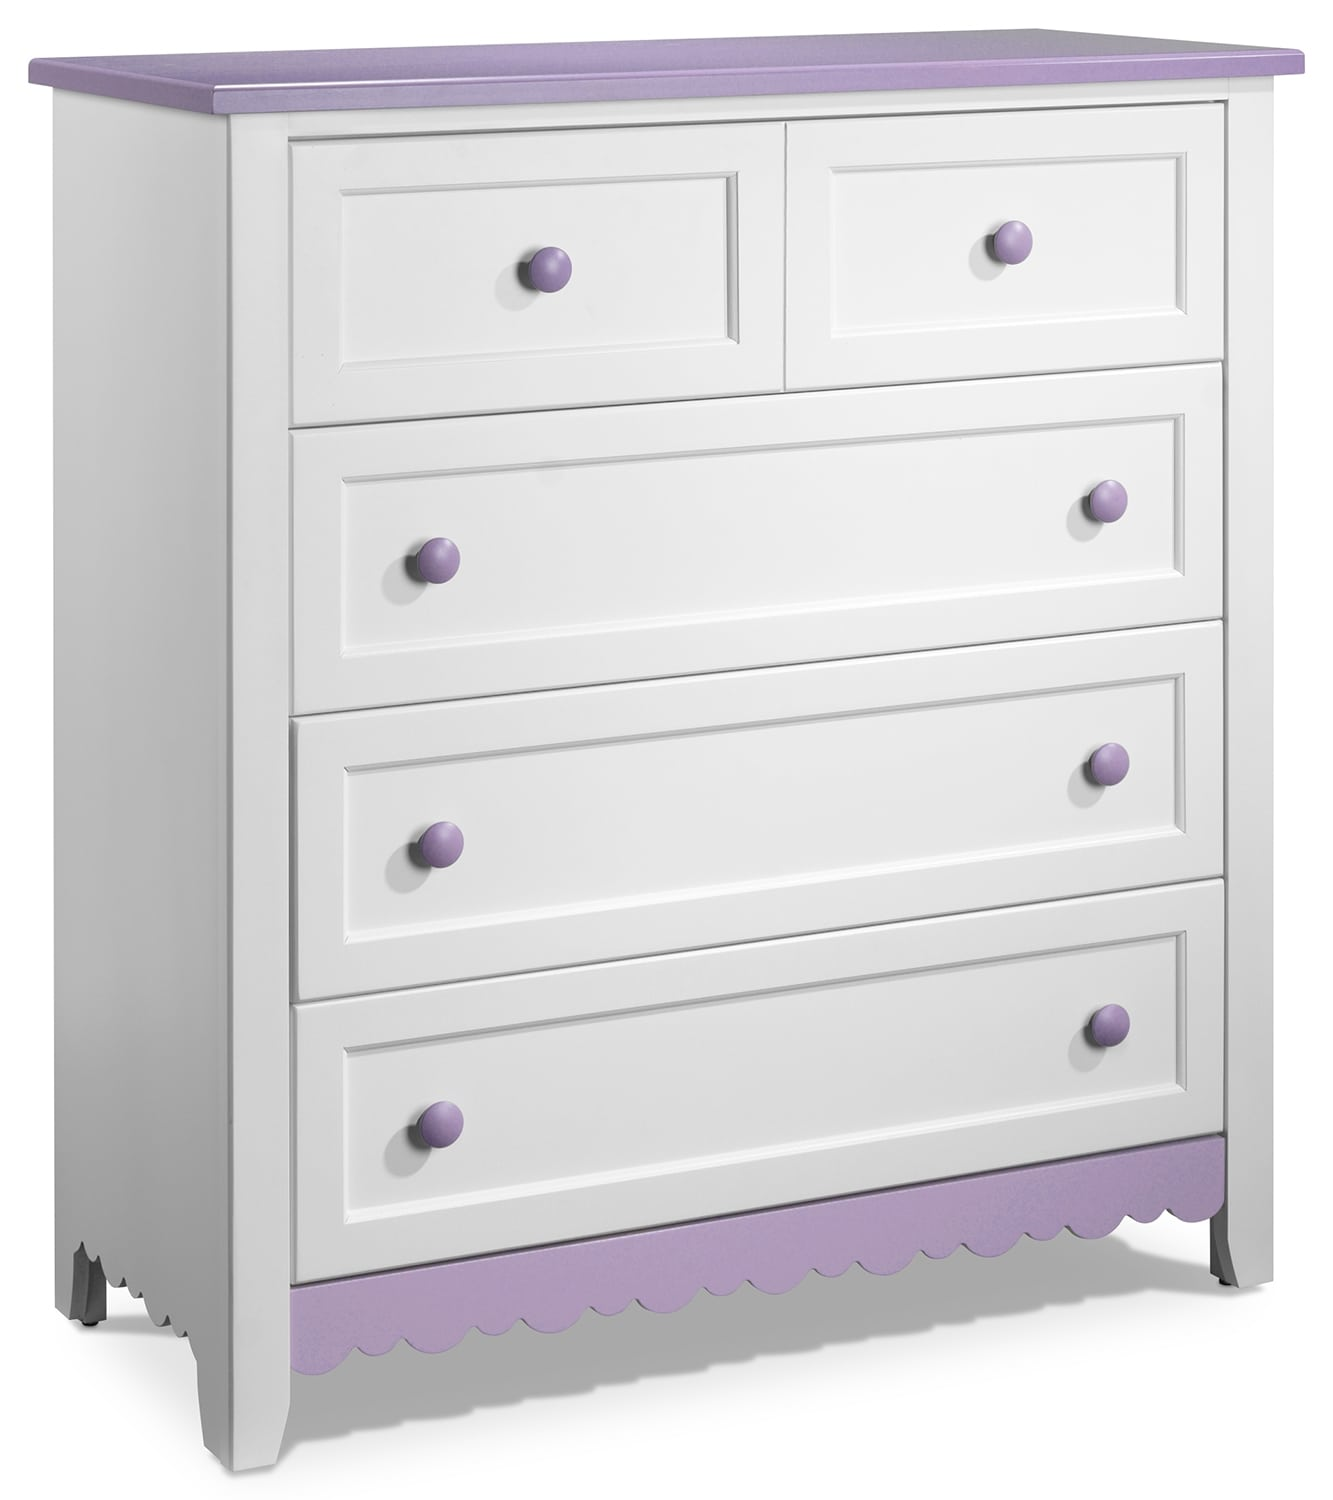 Sweetdreams Chest - White and Lavender